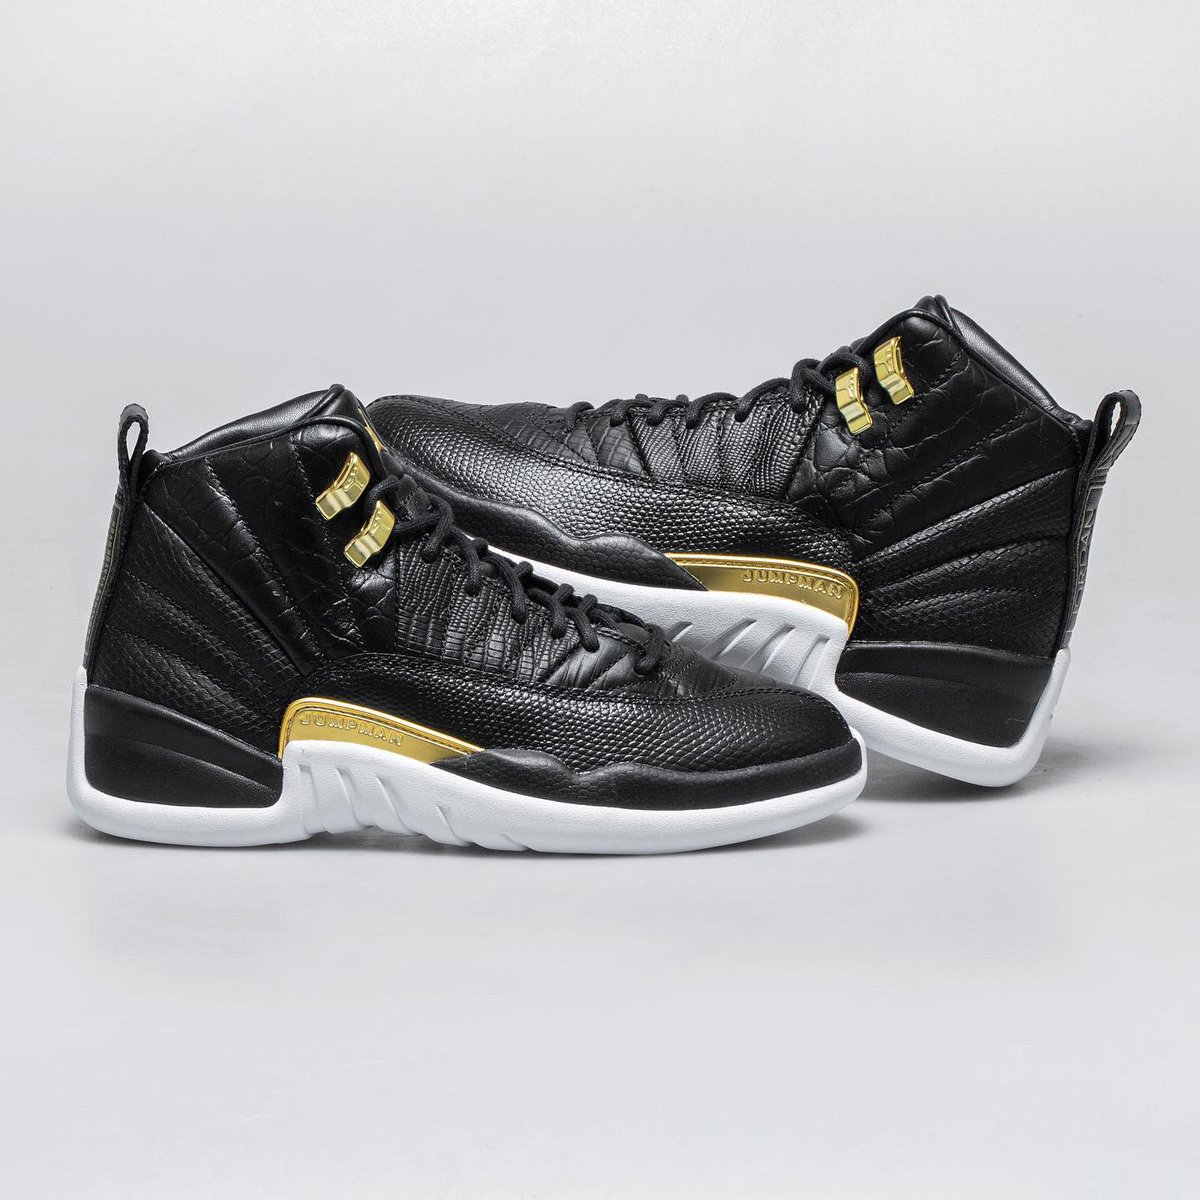 best service 7e152 ec364 air jordan retro 12 reptile womens lifestyle shoe having a similar look as  the wings air